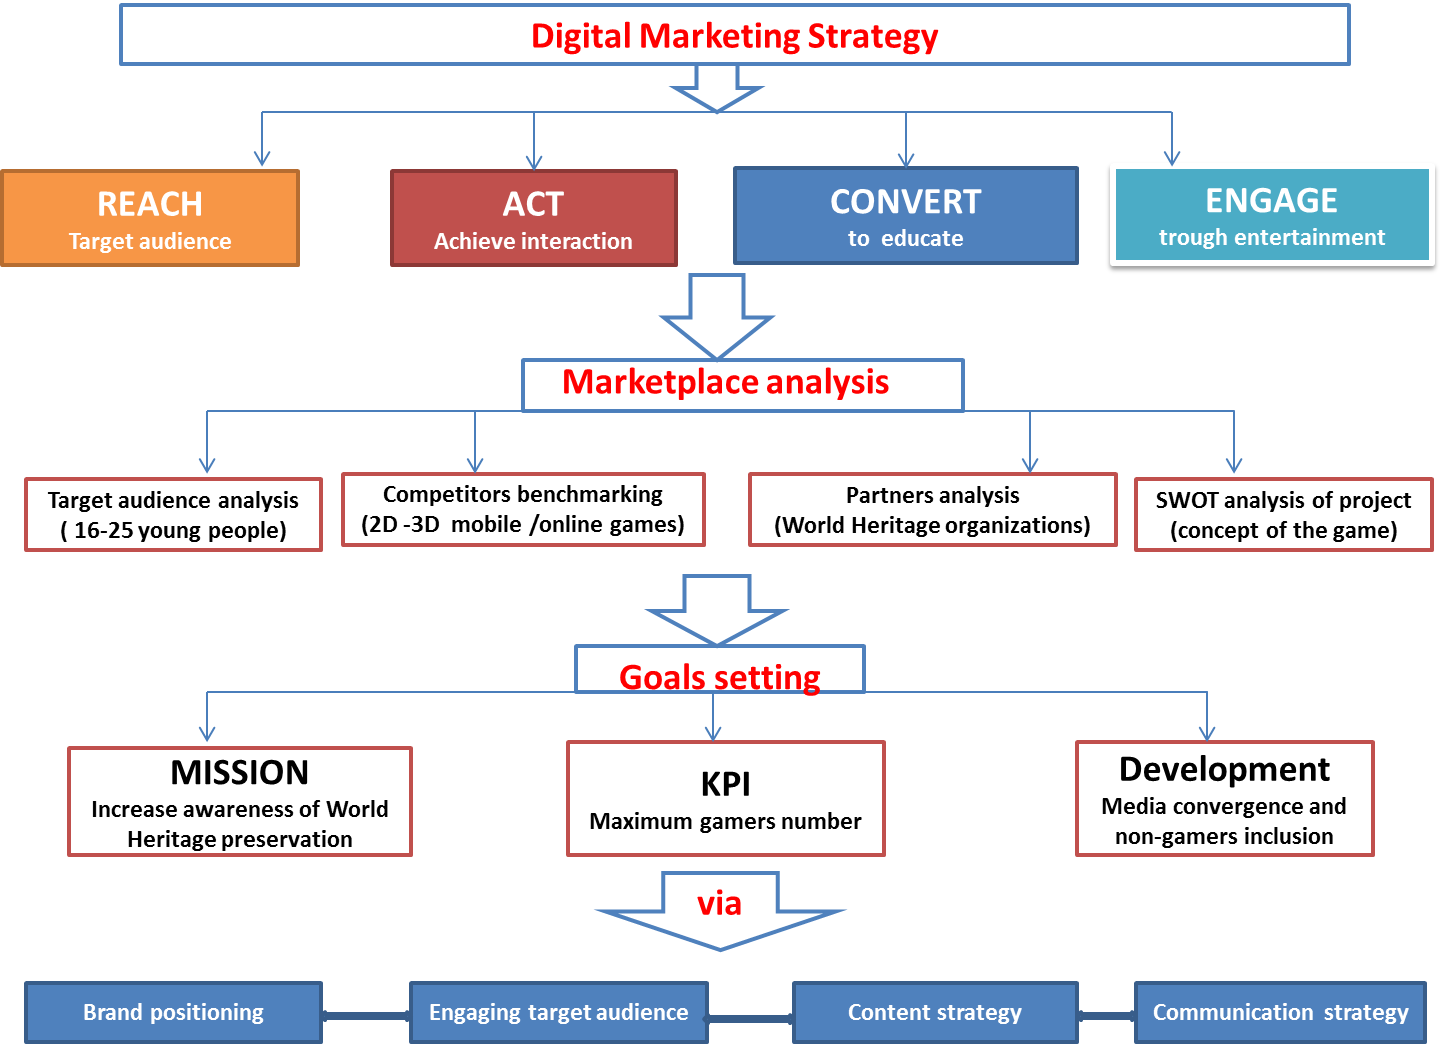 marketing planning process of h m Hm marketing plan uk - download as pdf file (pdf), text file (txt) or read  on  sustainability and improvement on production processes as well as follow the.